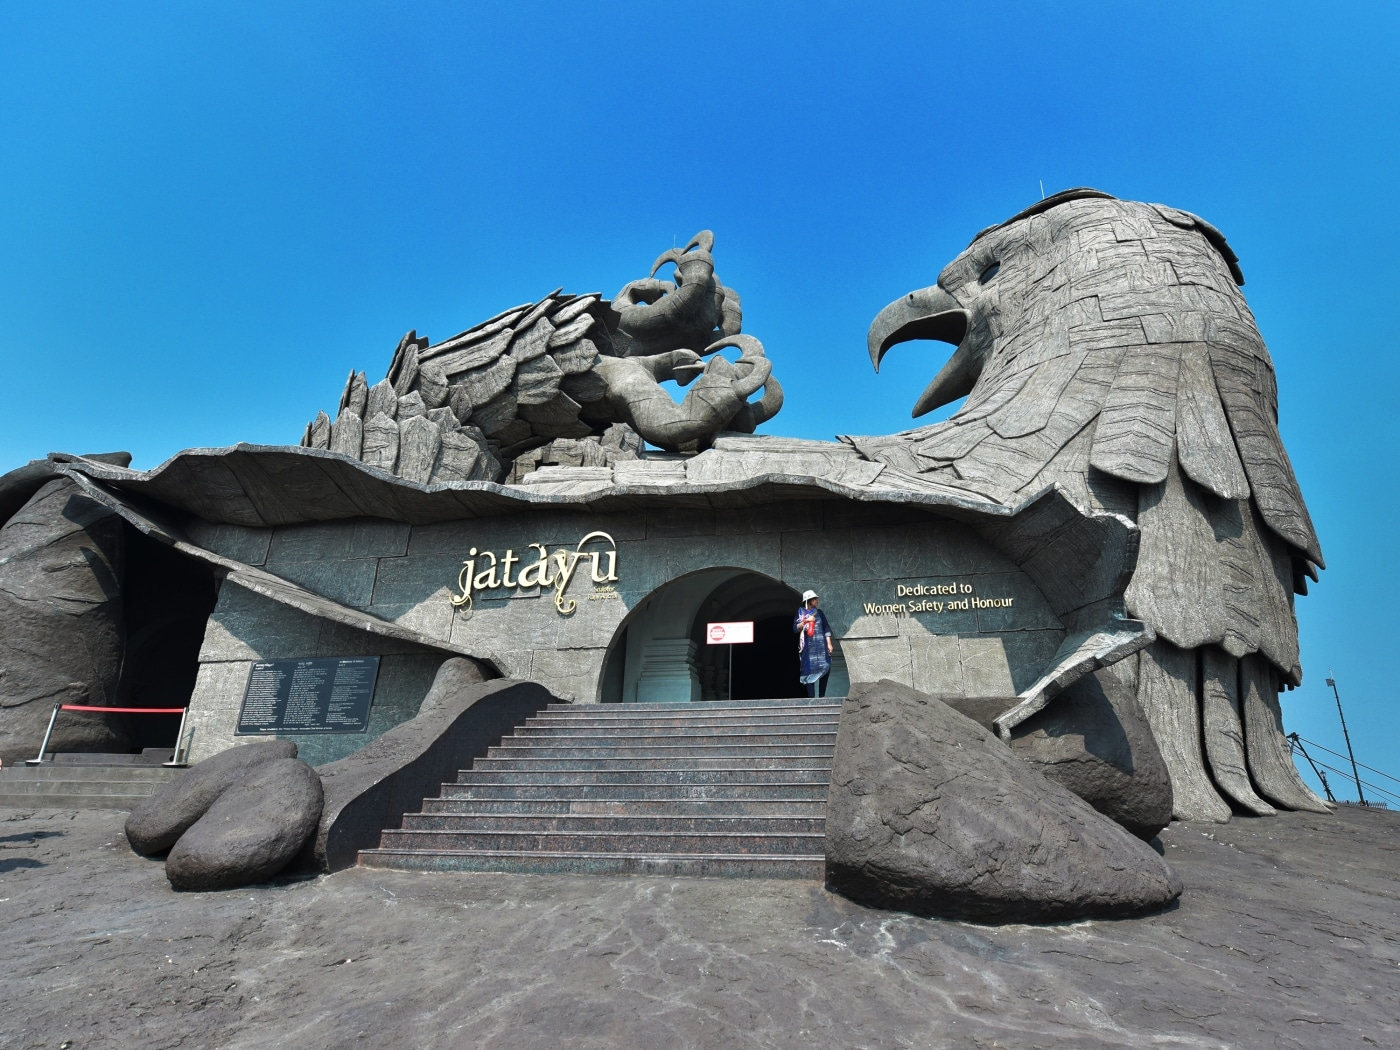 Jatayu, the World's Largest Bird Sculpture